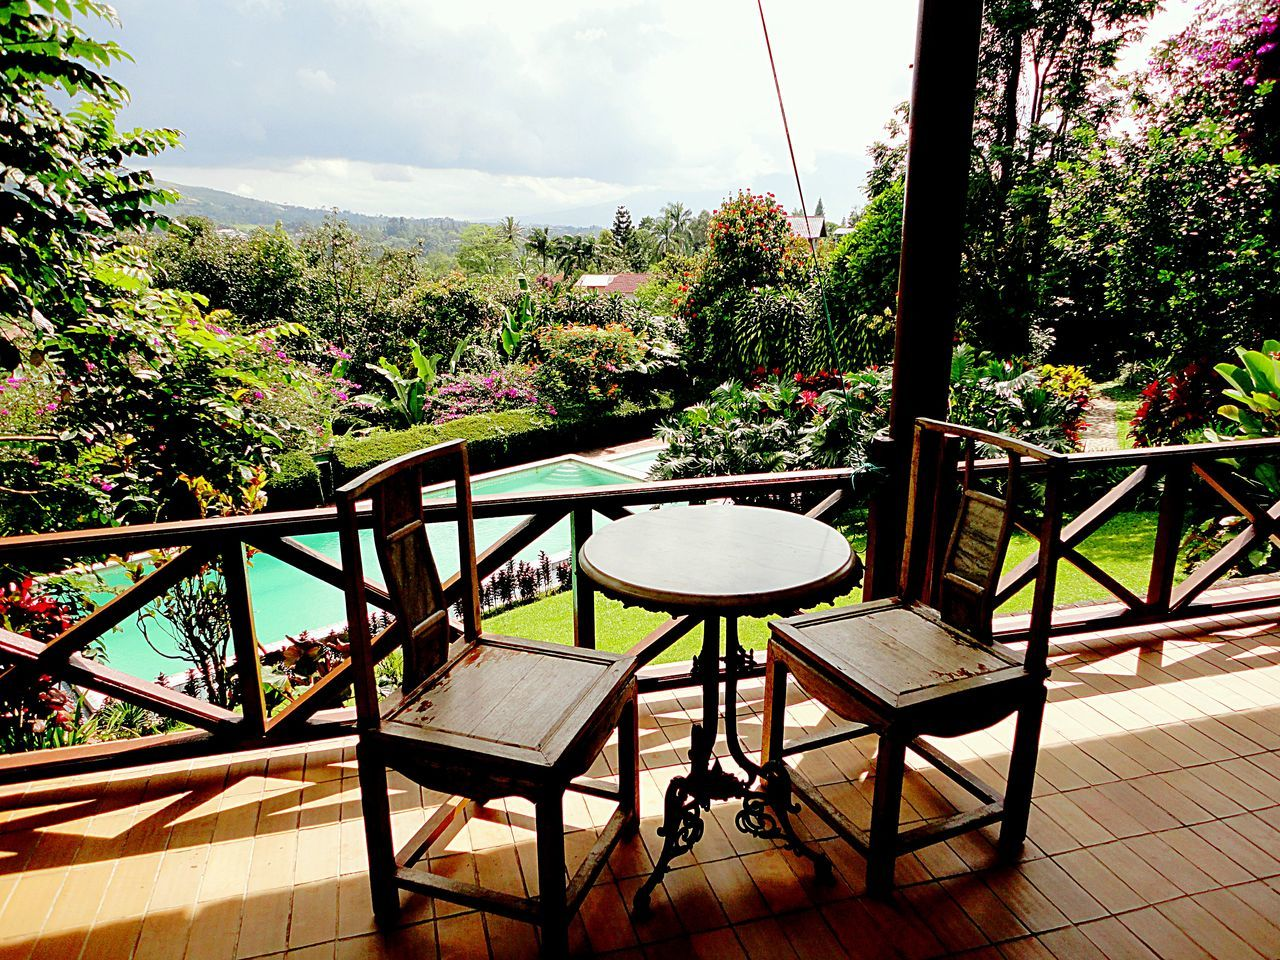 Puncak Pass INDONESIA patio balcony overlooking swimmingpool Jawa